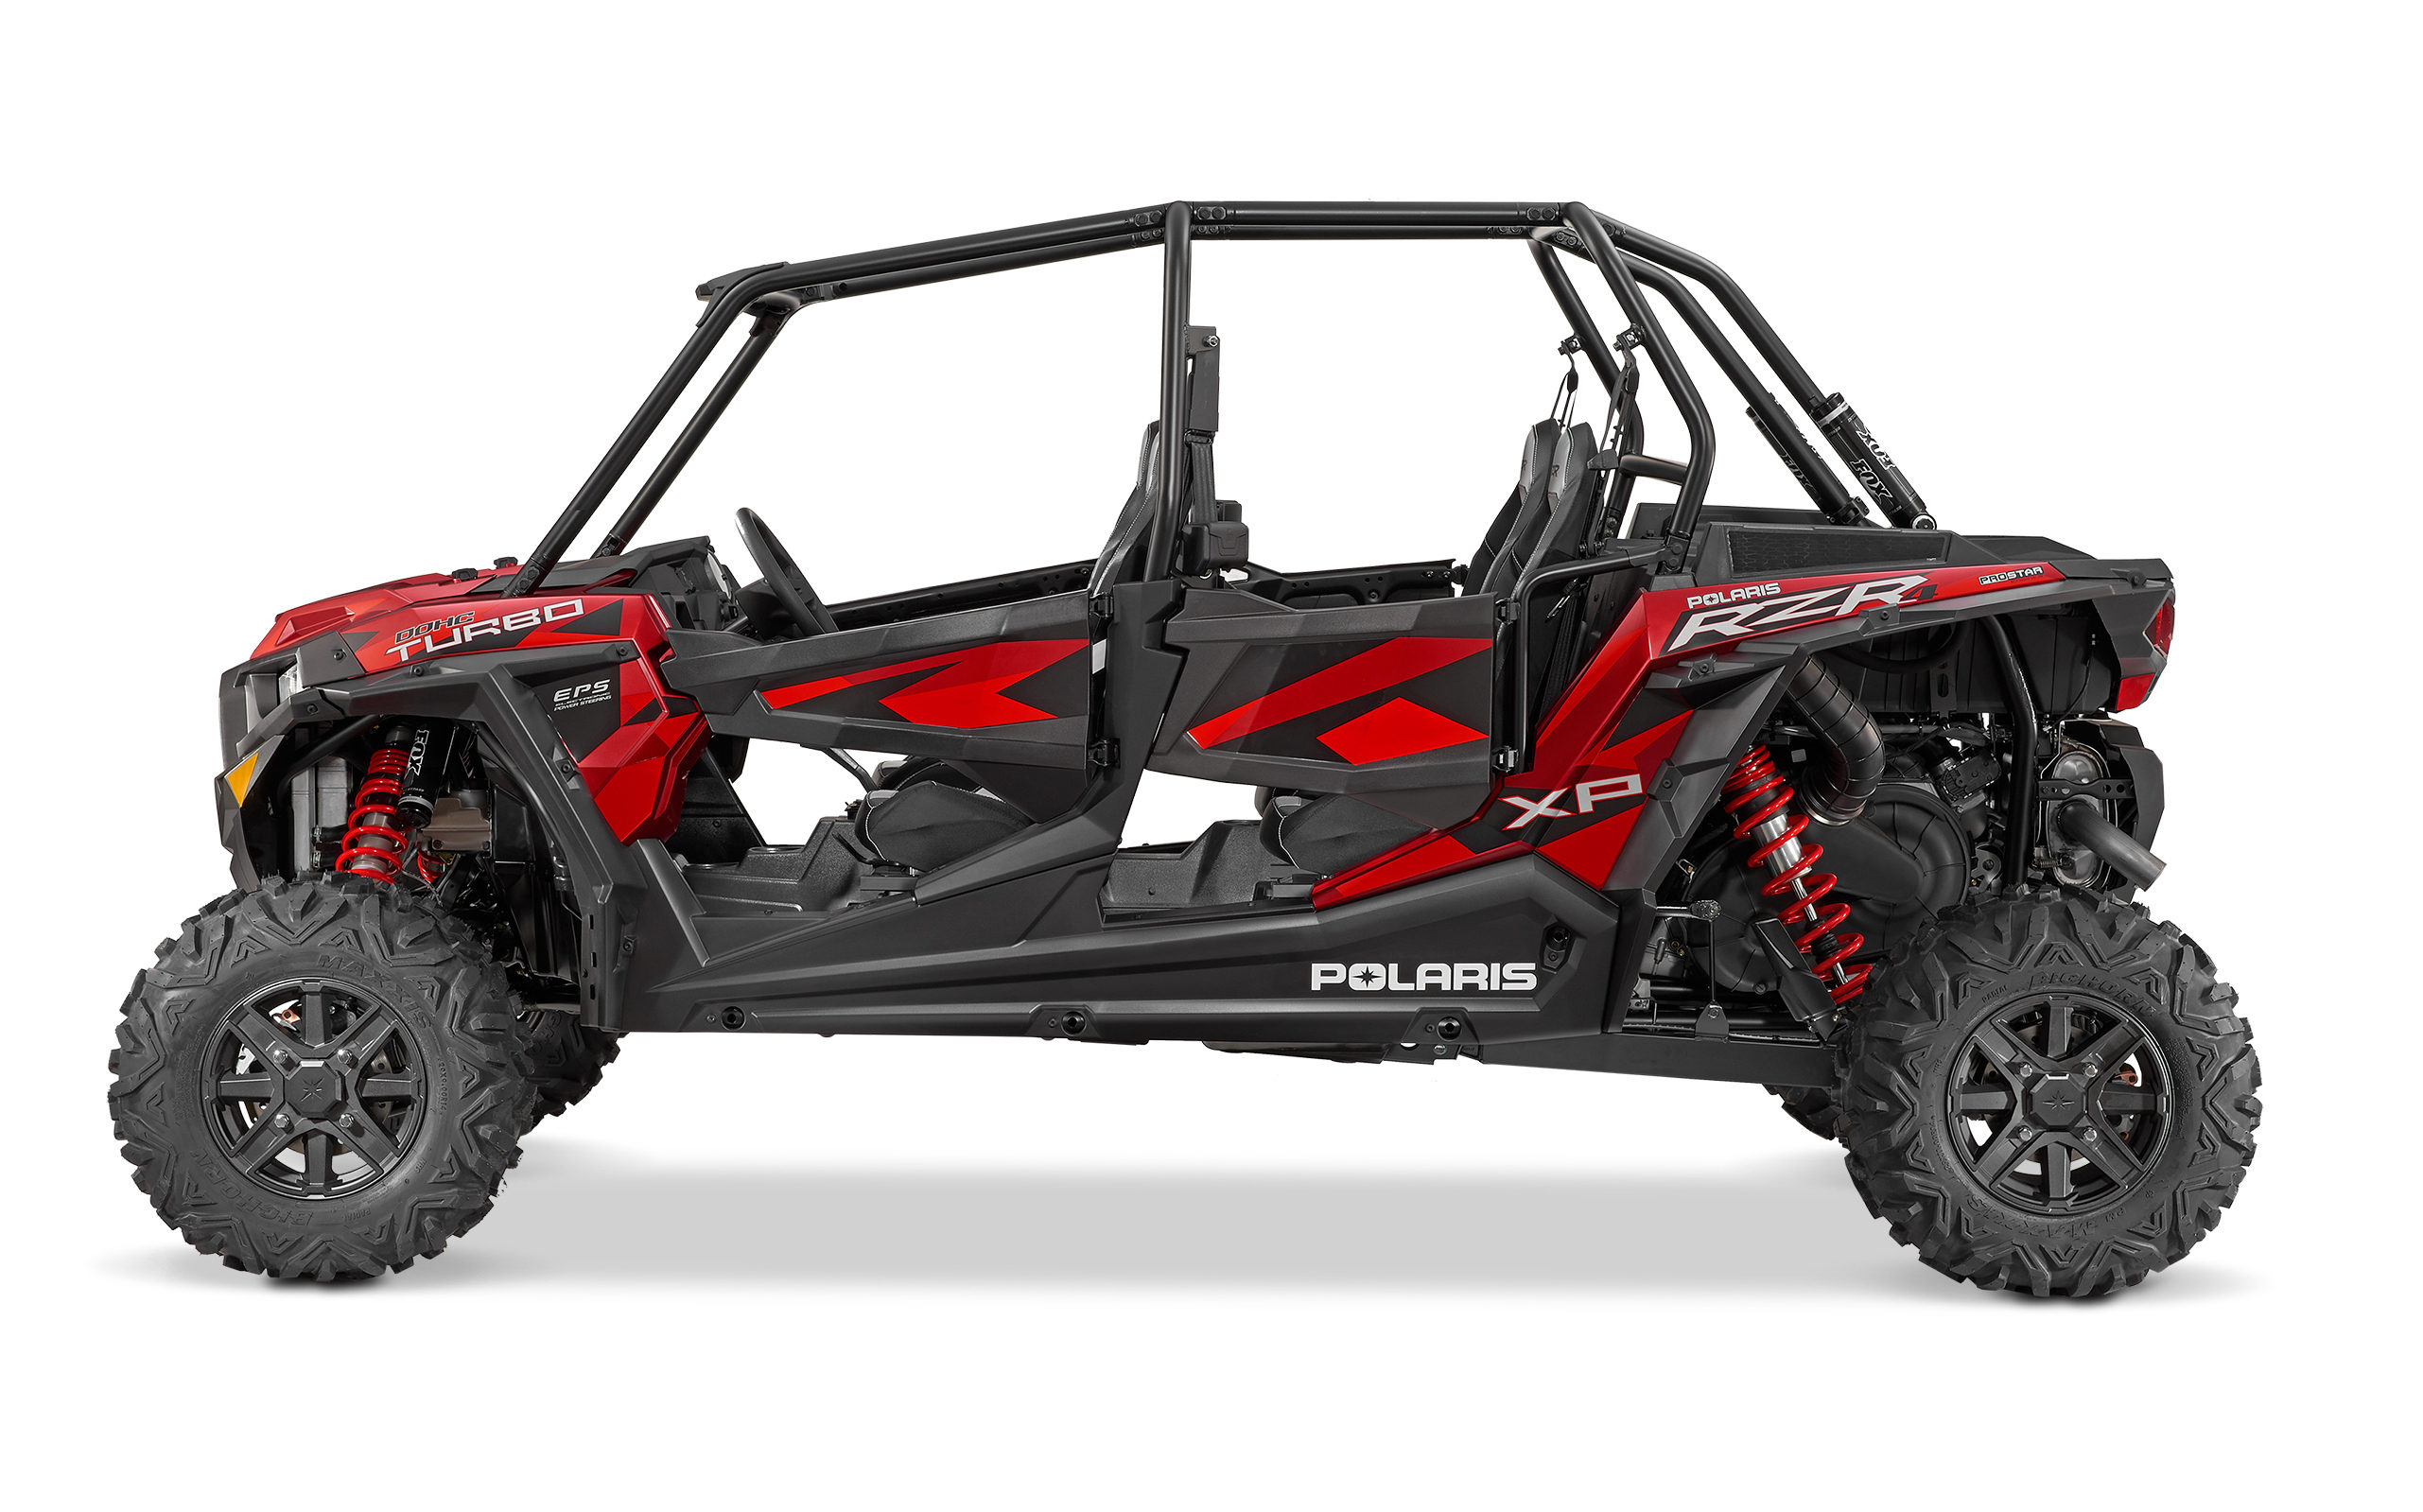 2017 Polaris 570 Sp Headlight Wiring Diagram 44 Diagrams 2016 Ranger Atv Recalls Rzr Xp 4 Turbo Cpsc At